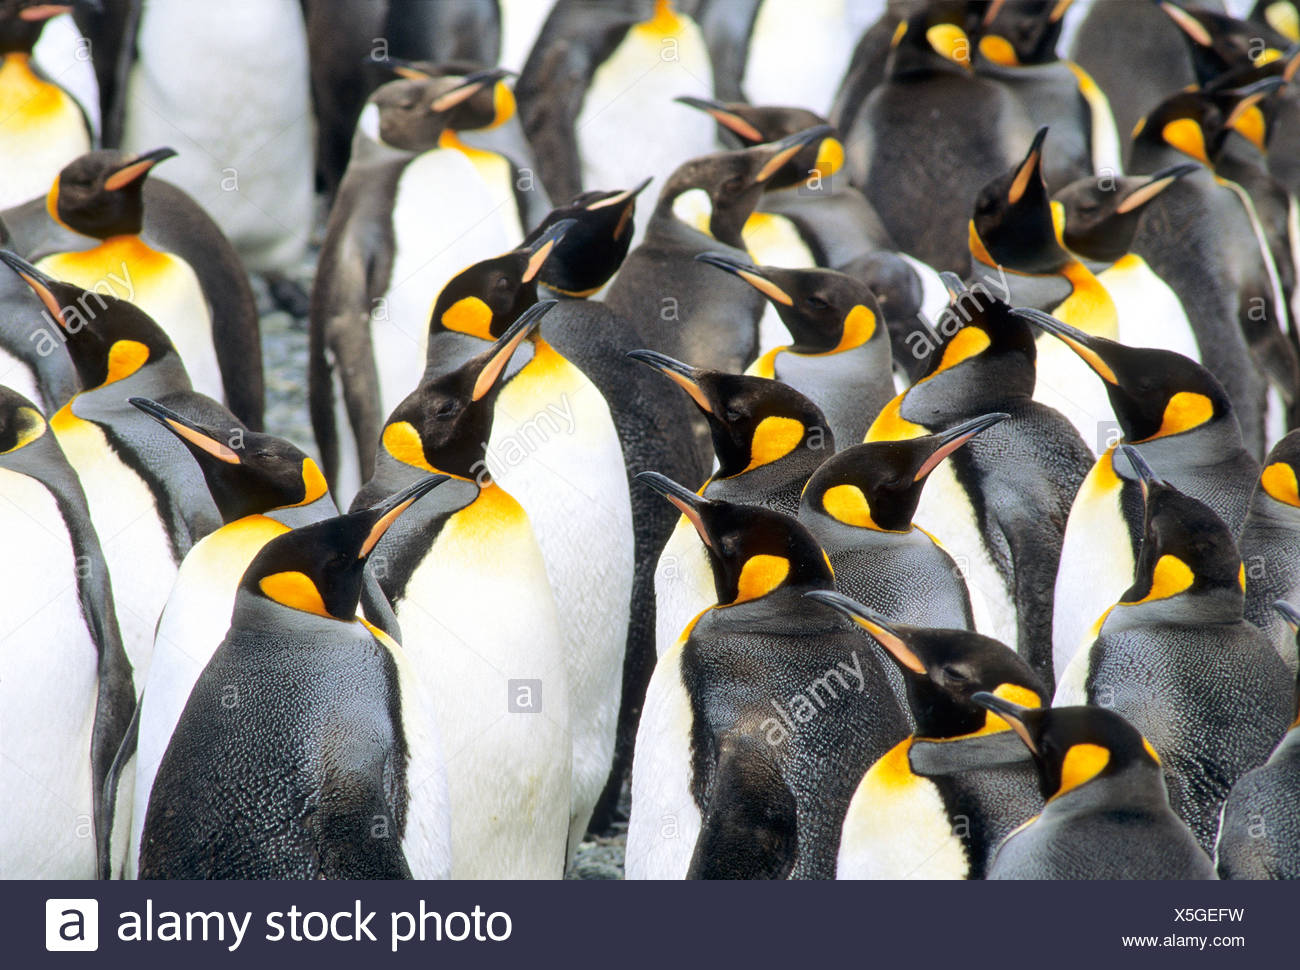 Molting adult king penguins (Aptenodytes patagonicus), Salisbury Plains, South Georgia Island, southern Atlantic Ocean - Stock Image